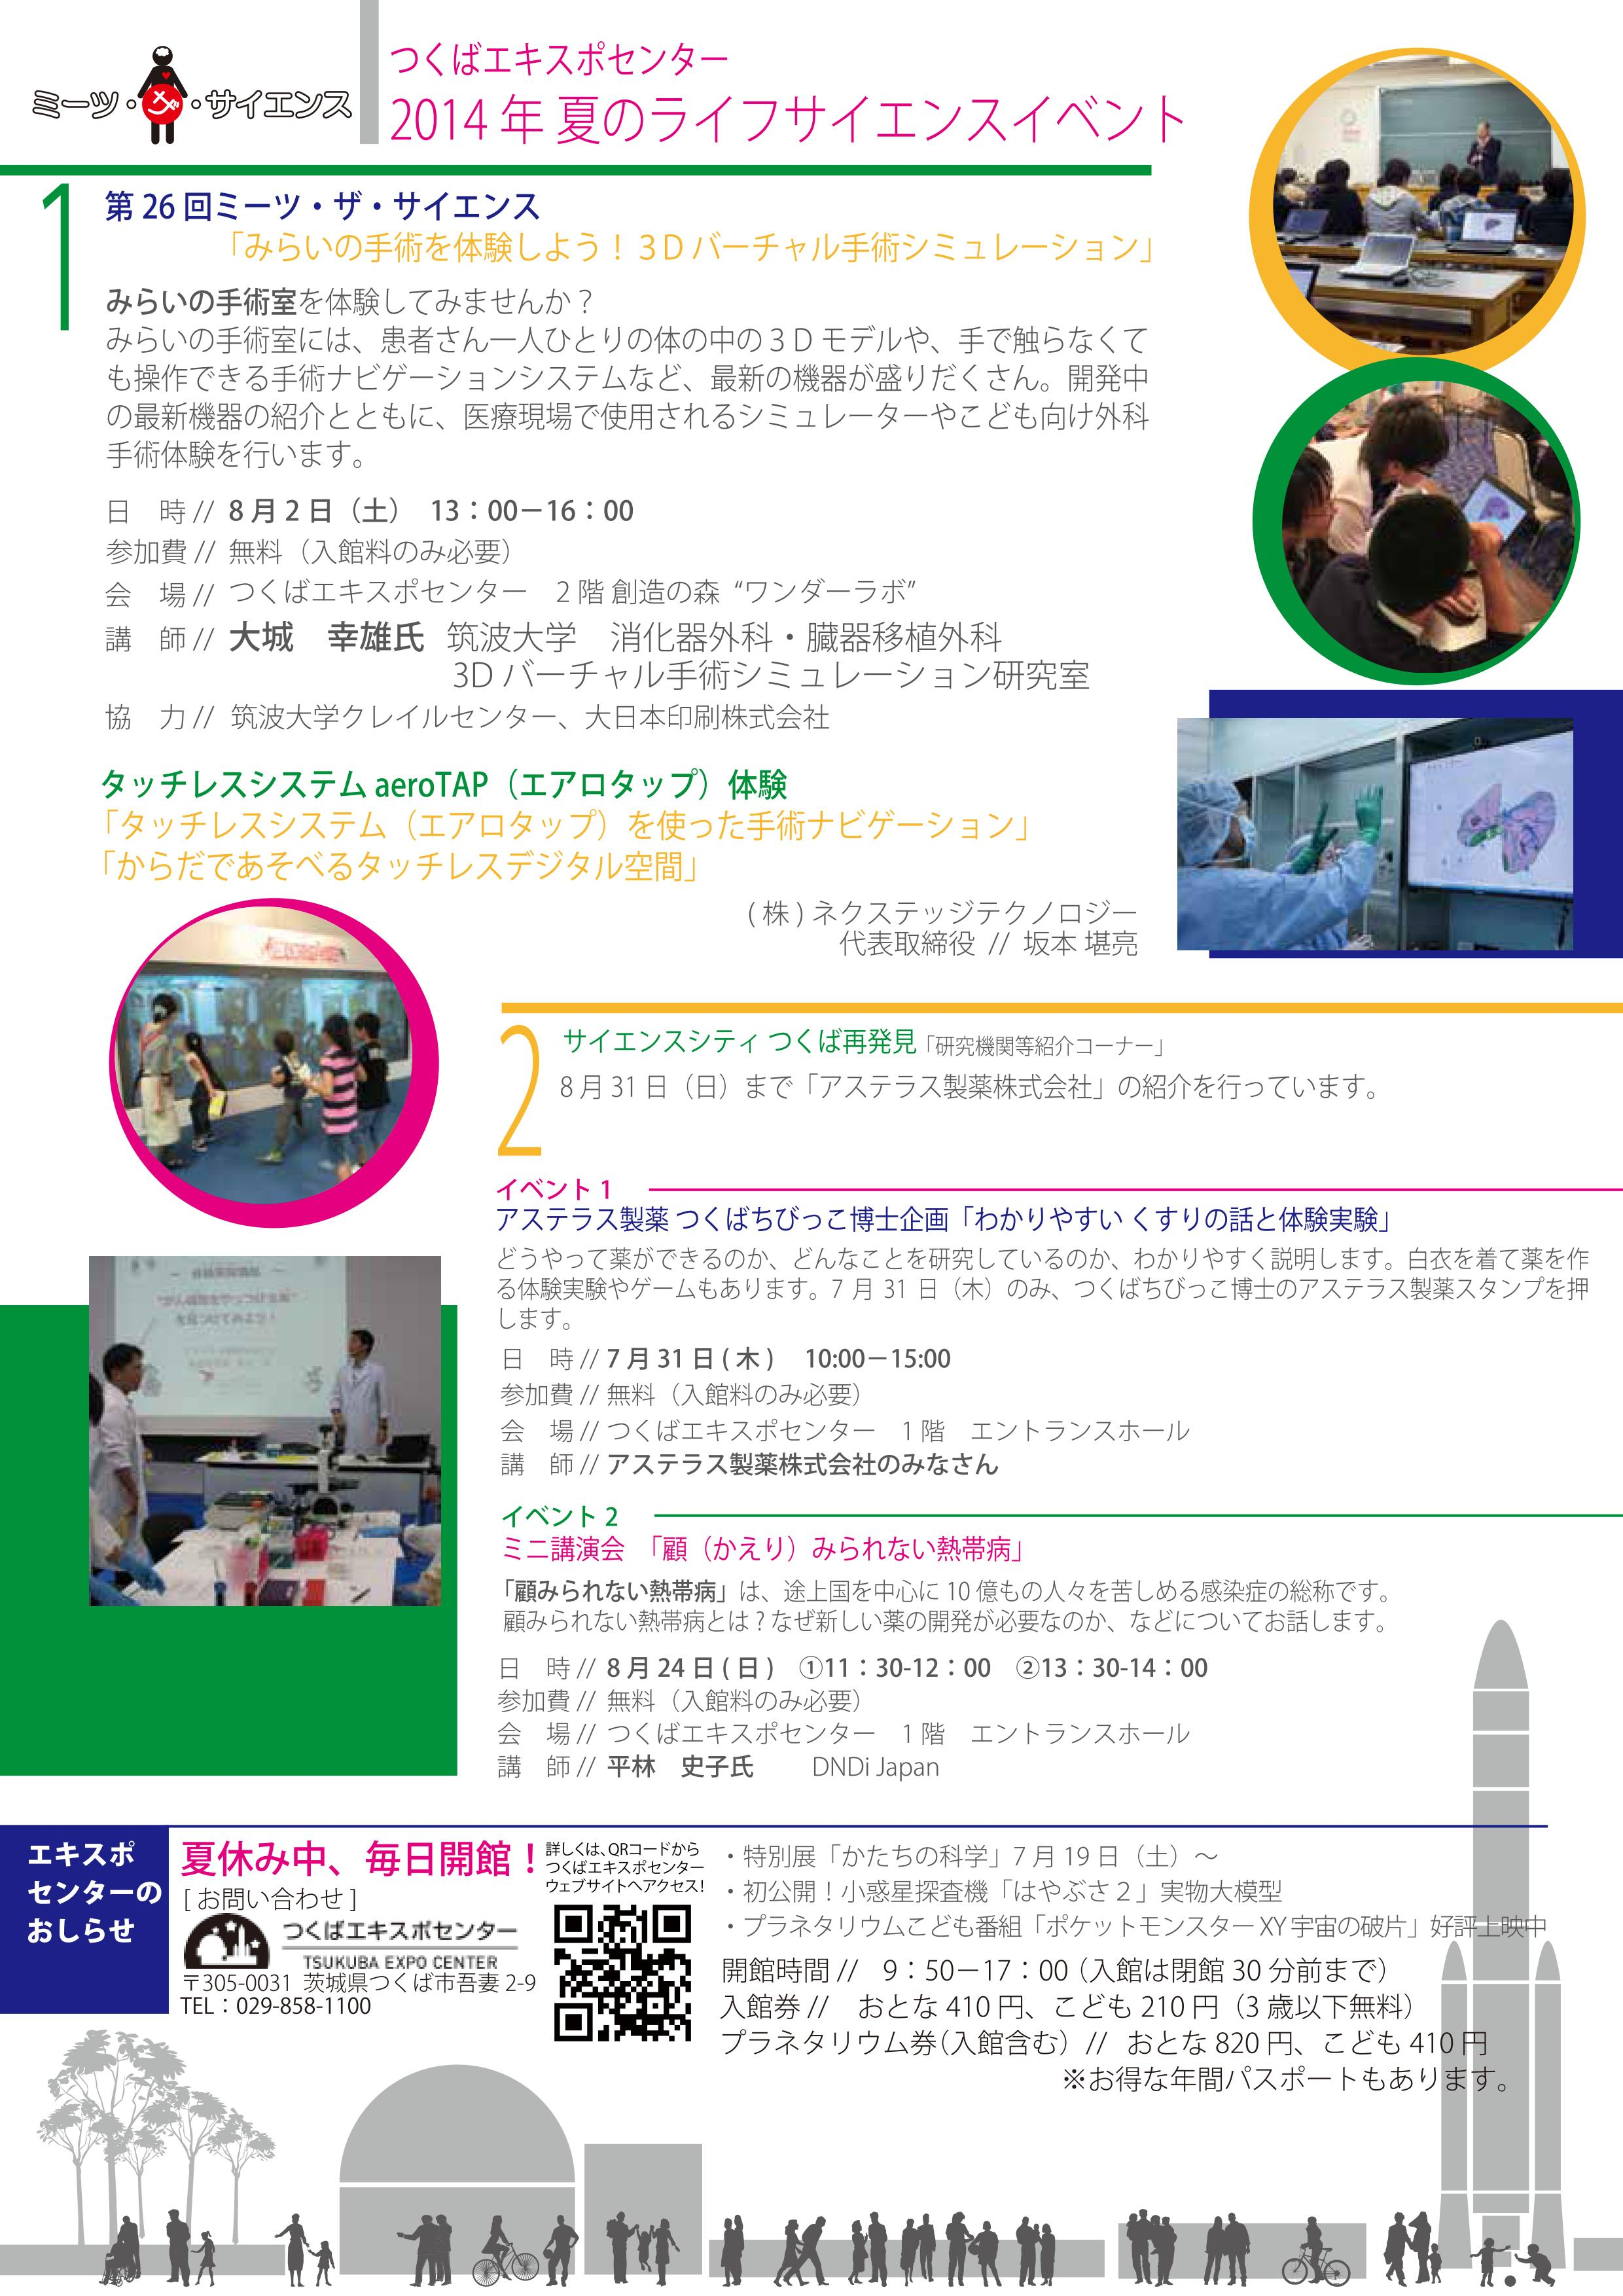 expo-event(7.8修正, outlined) (1)_02